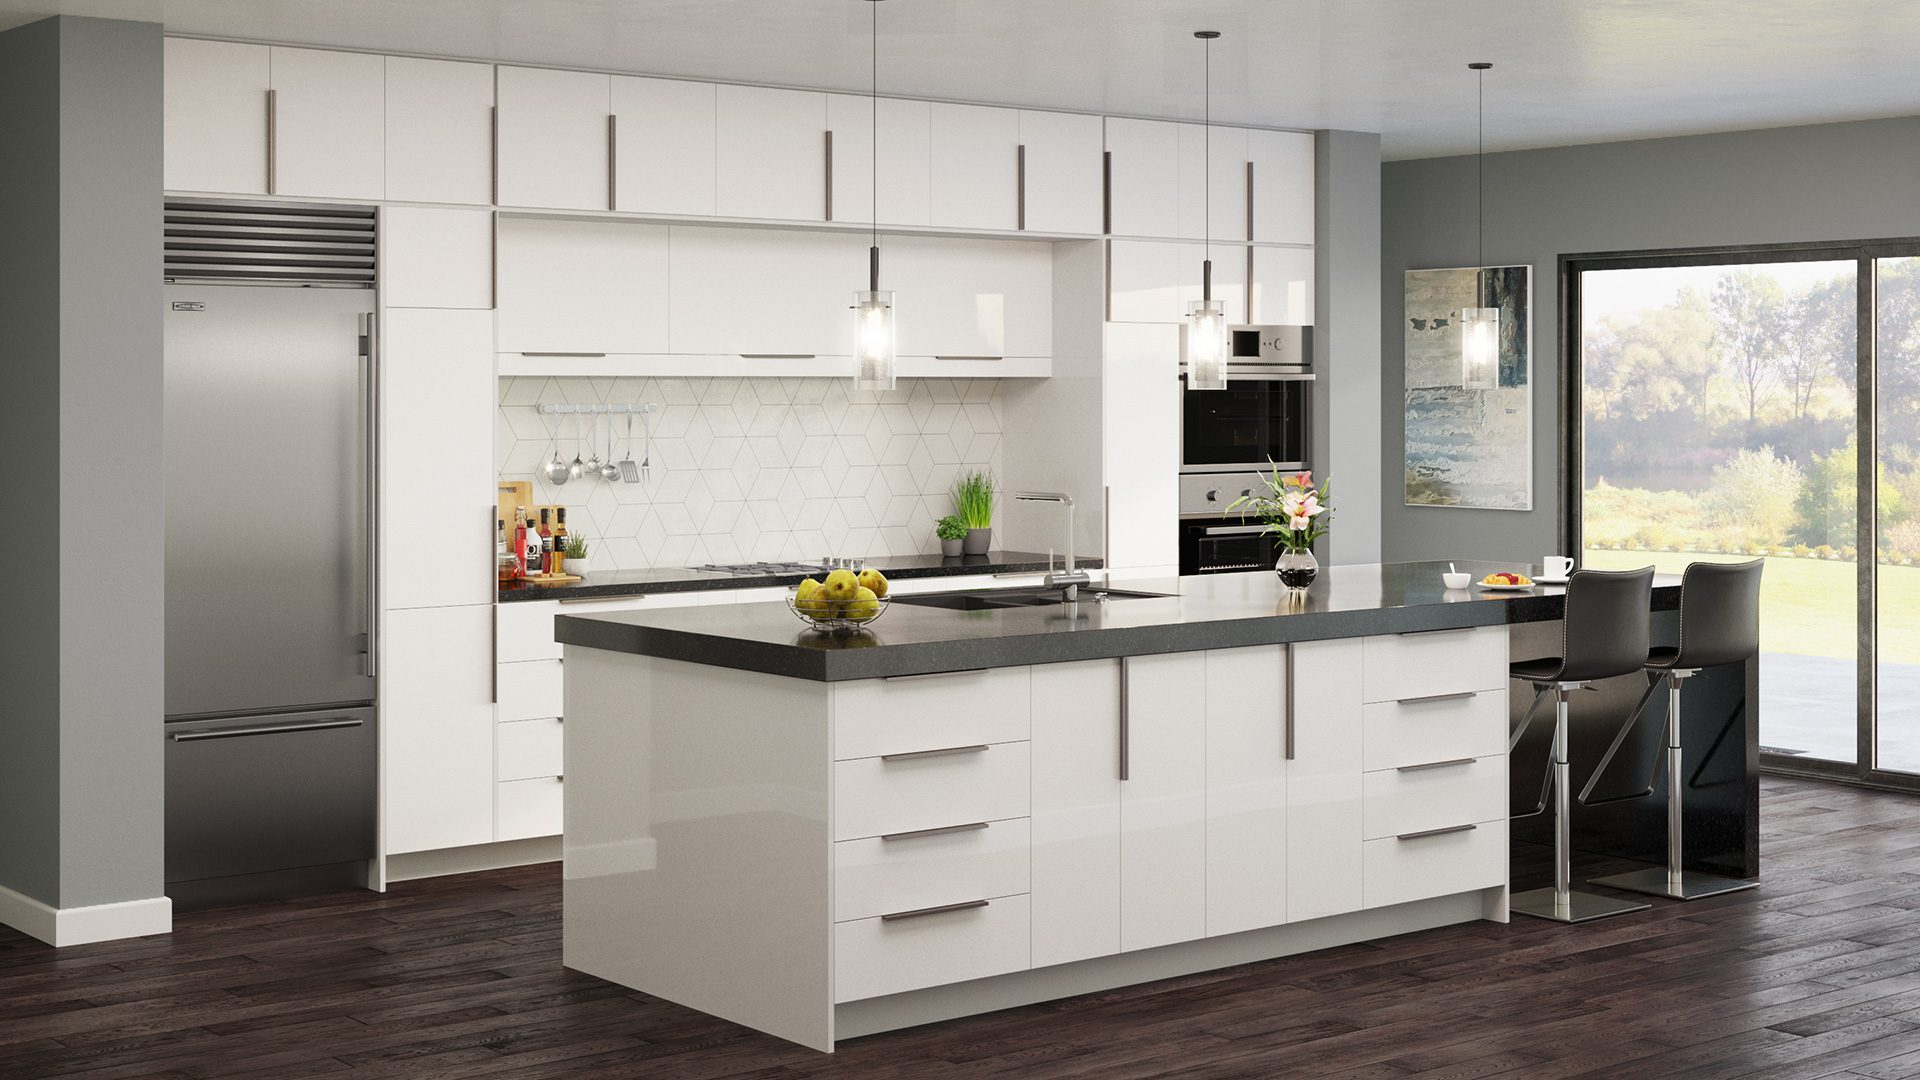 high-gloss white cabinets